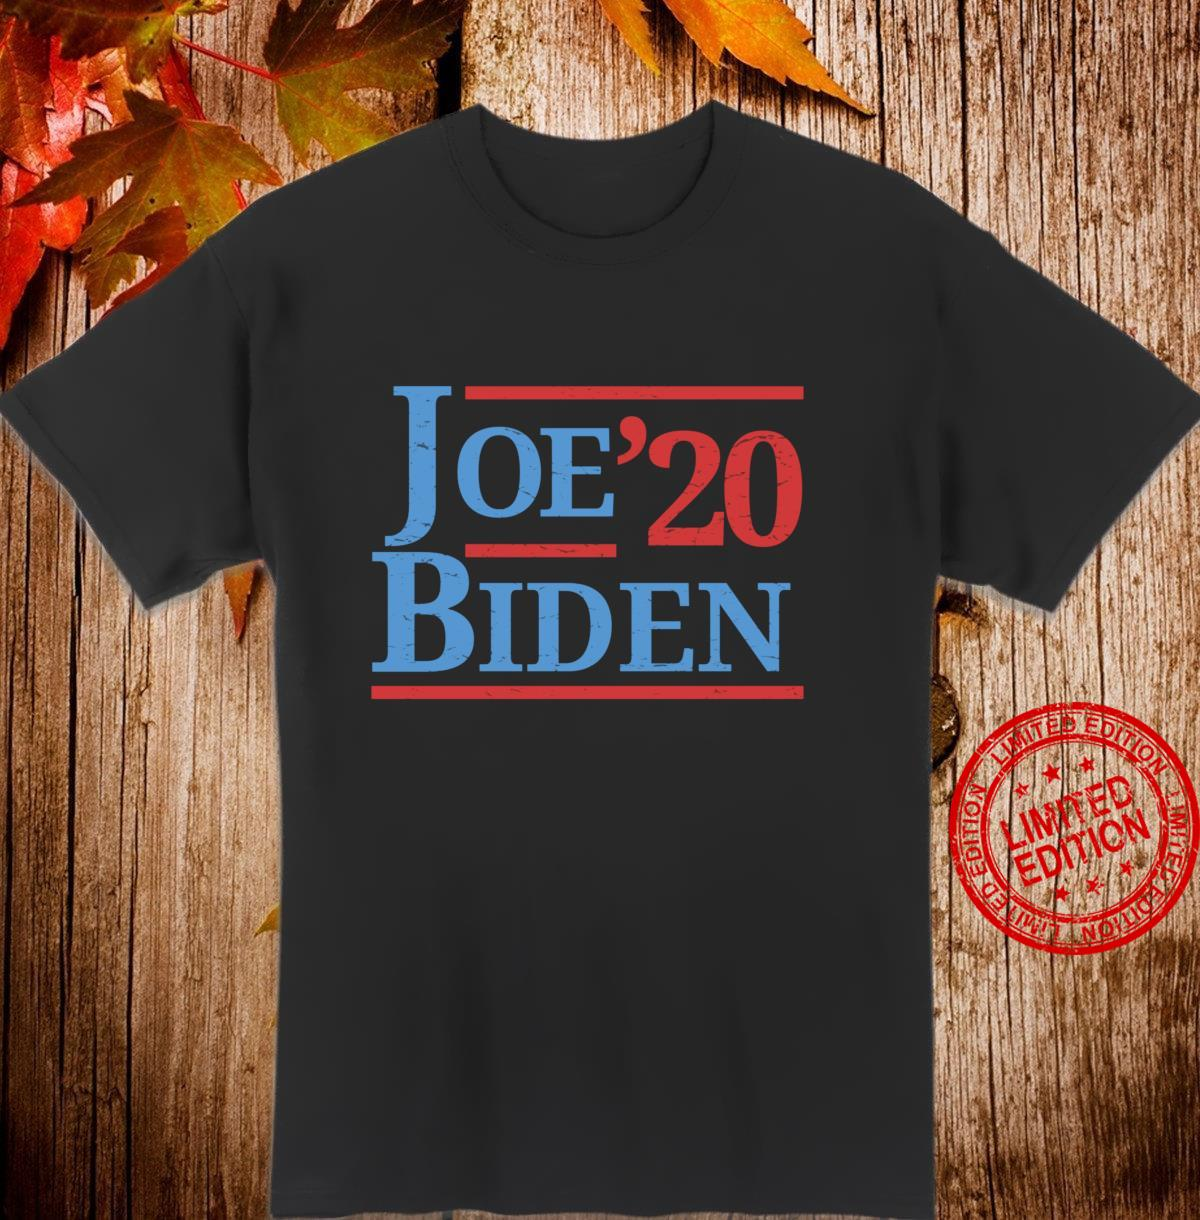 Joe Biden 2020 for President Vintage Shirt